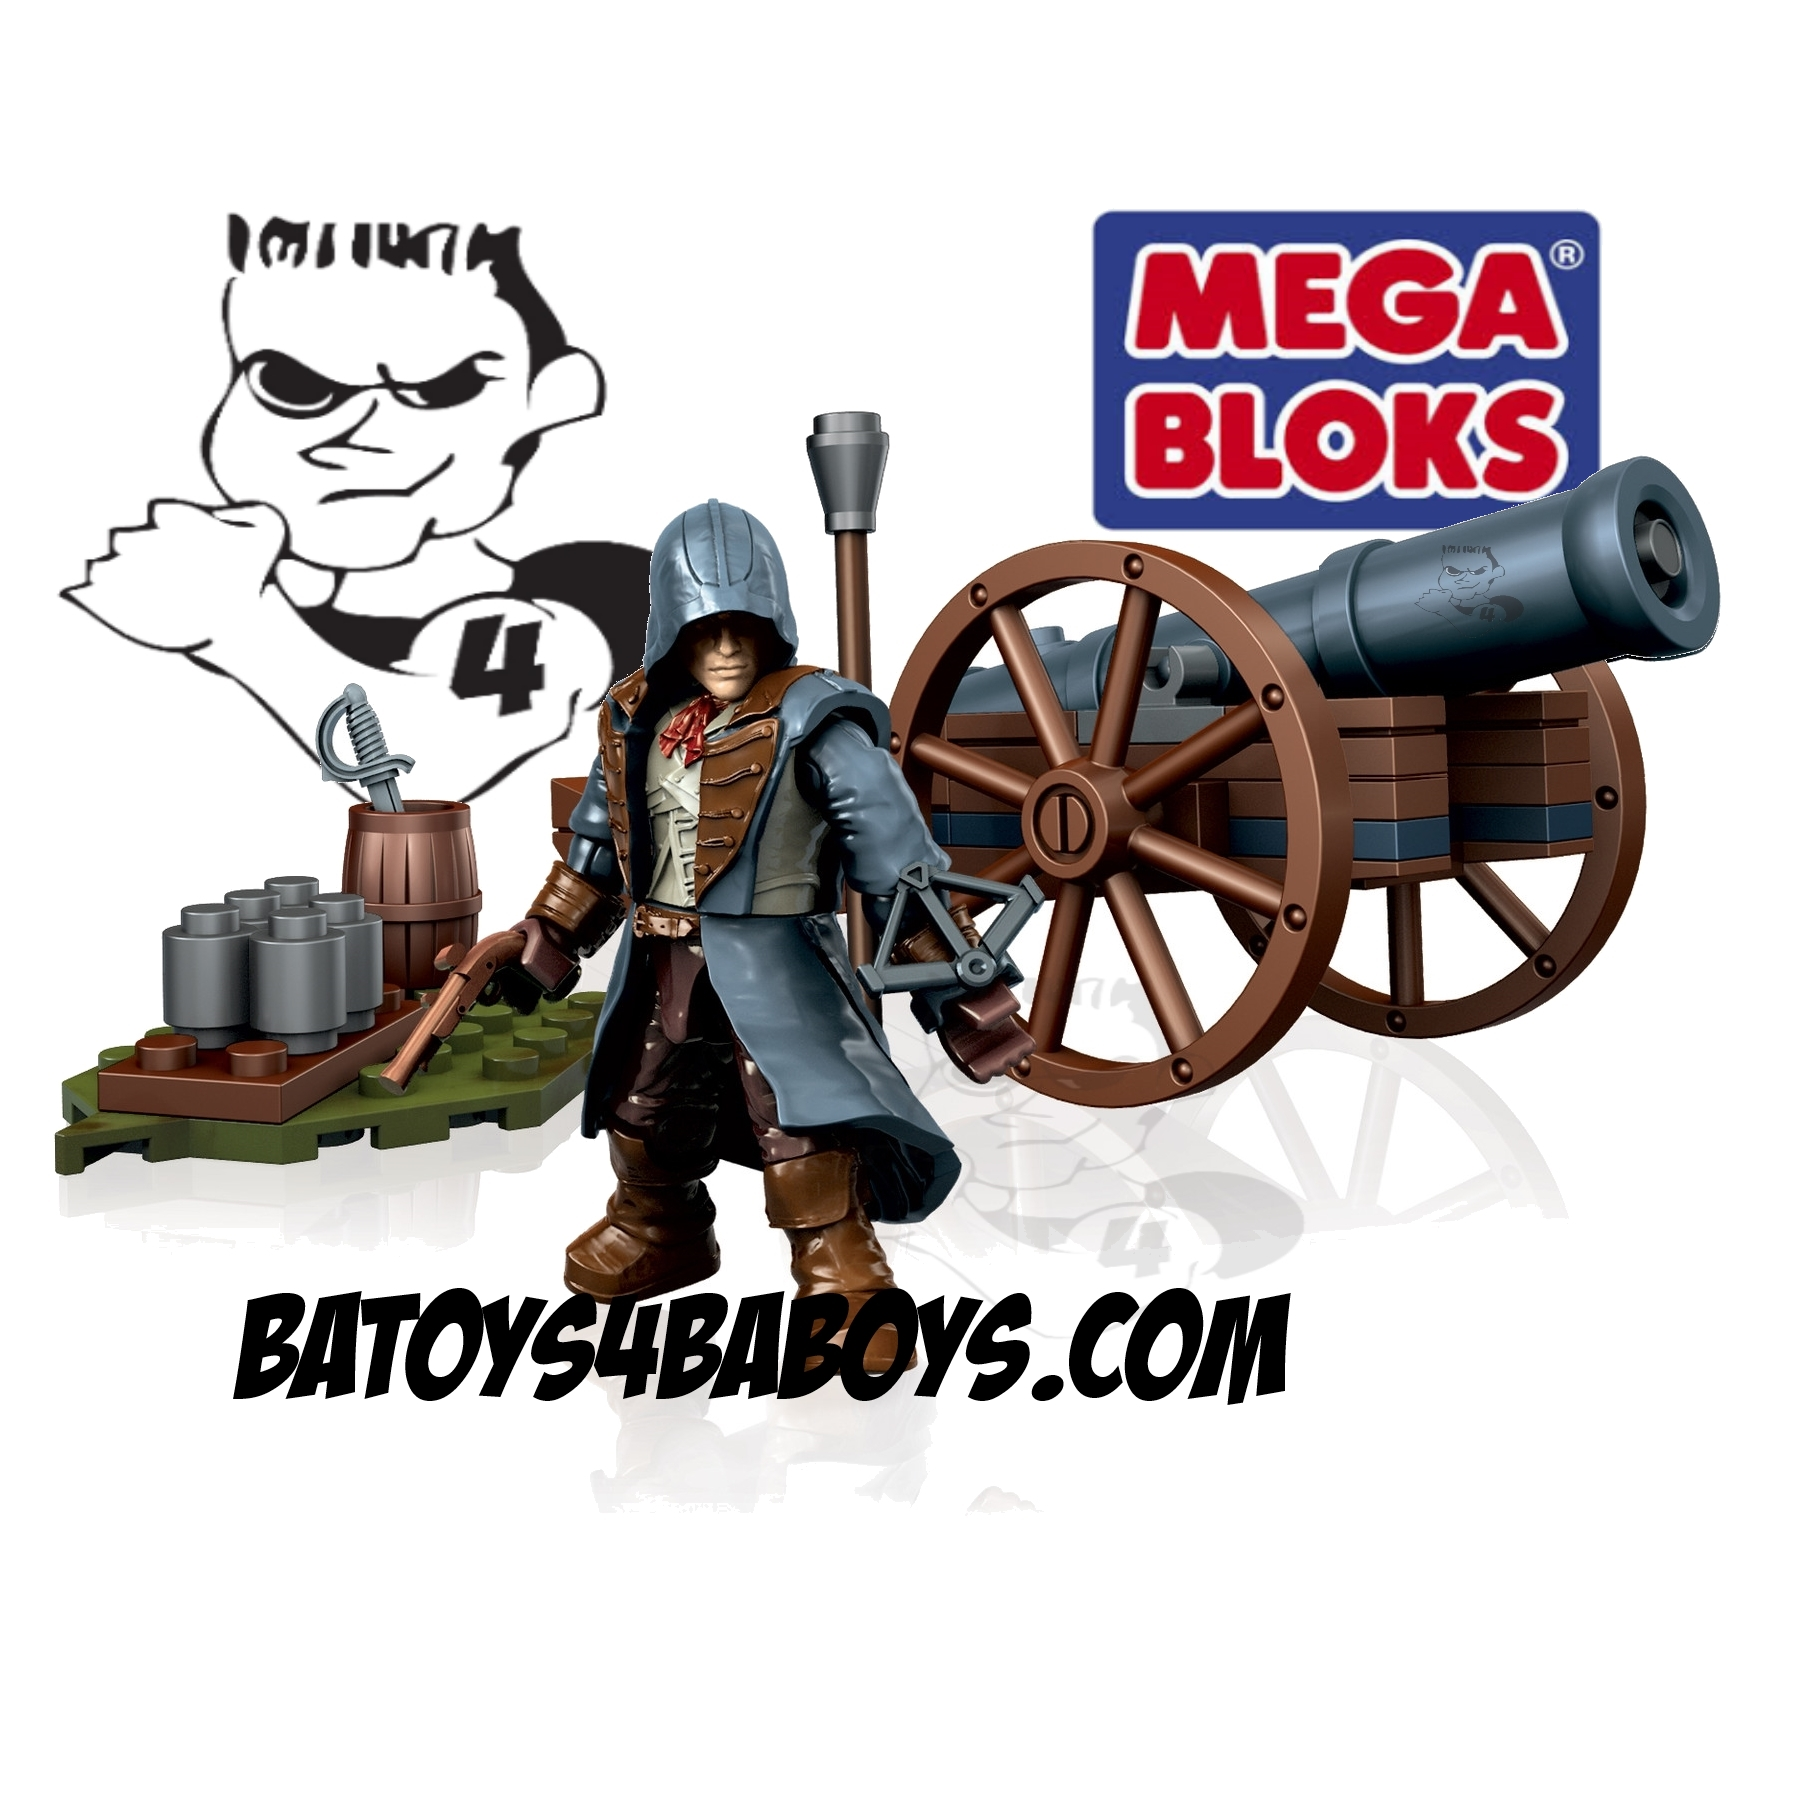 2014 Mega Bloks Assassin's Creed Cannon Strike [Assault] officially licensed Mega Bloks Assassin's Creed product at B.A. Toys.